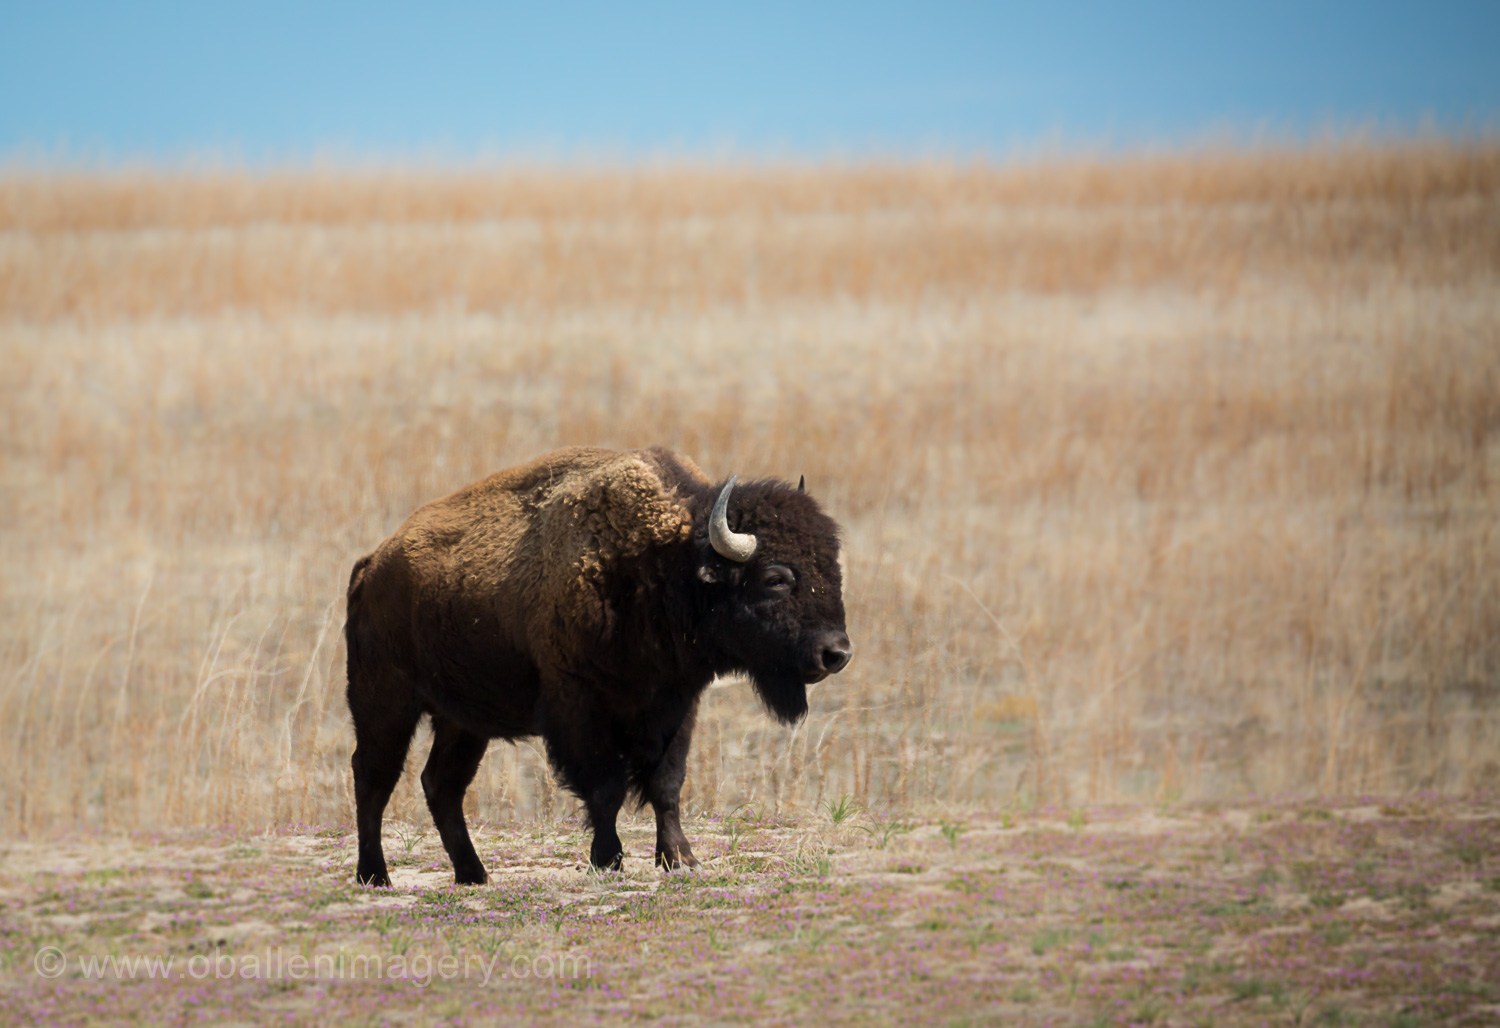 Antelope Island is very famous for their Bison herd. They are just coming out of winter and they look a little thin. The grass is greening just give them a little time and they'll put on some much needed weight.